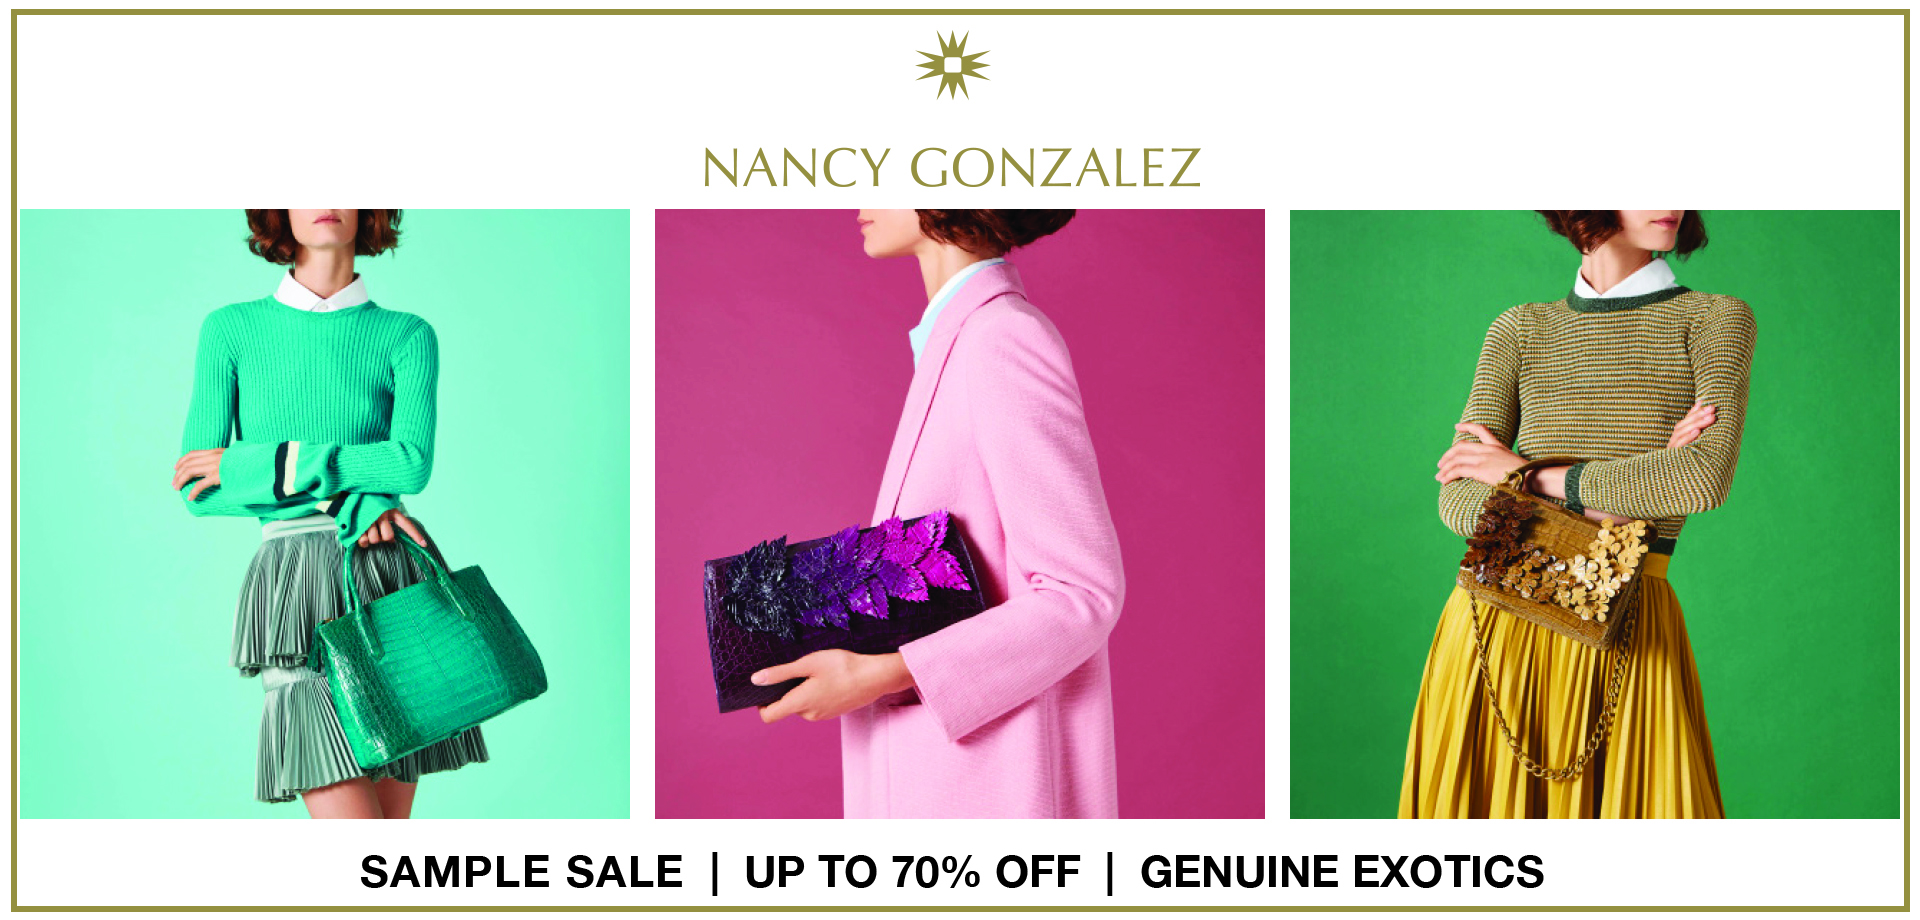 BANNER_Nancy-Gonzalez_SampleSale_260LA_June-2019.jpg